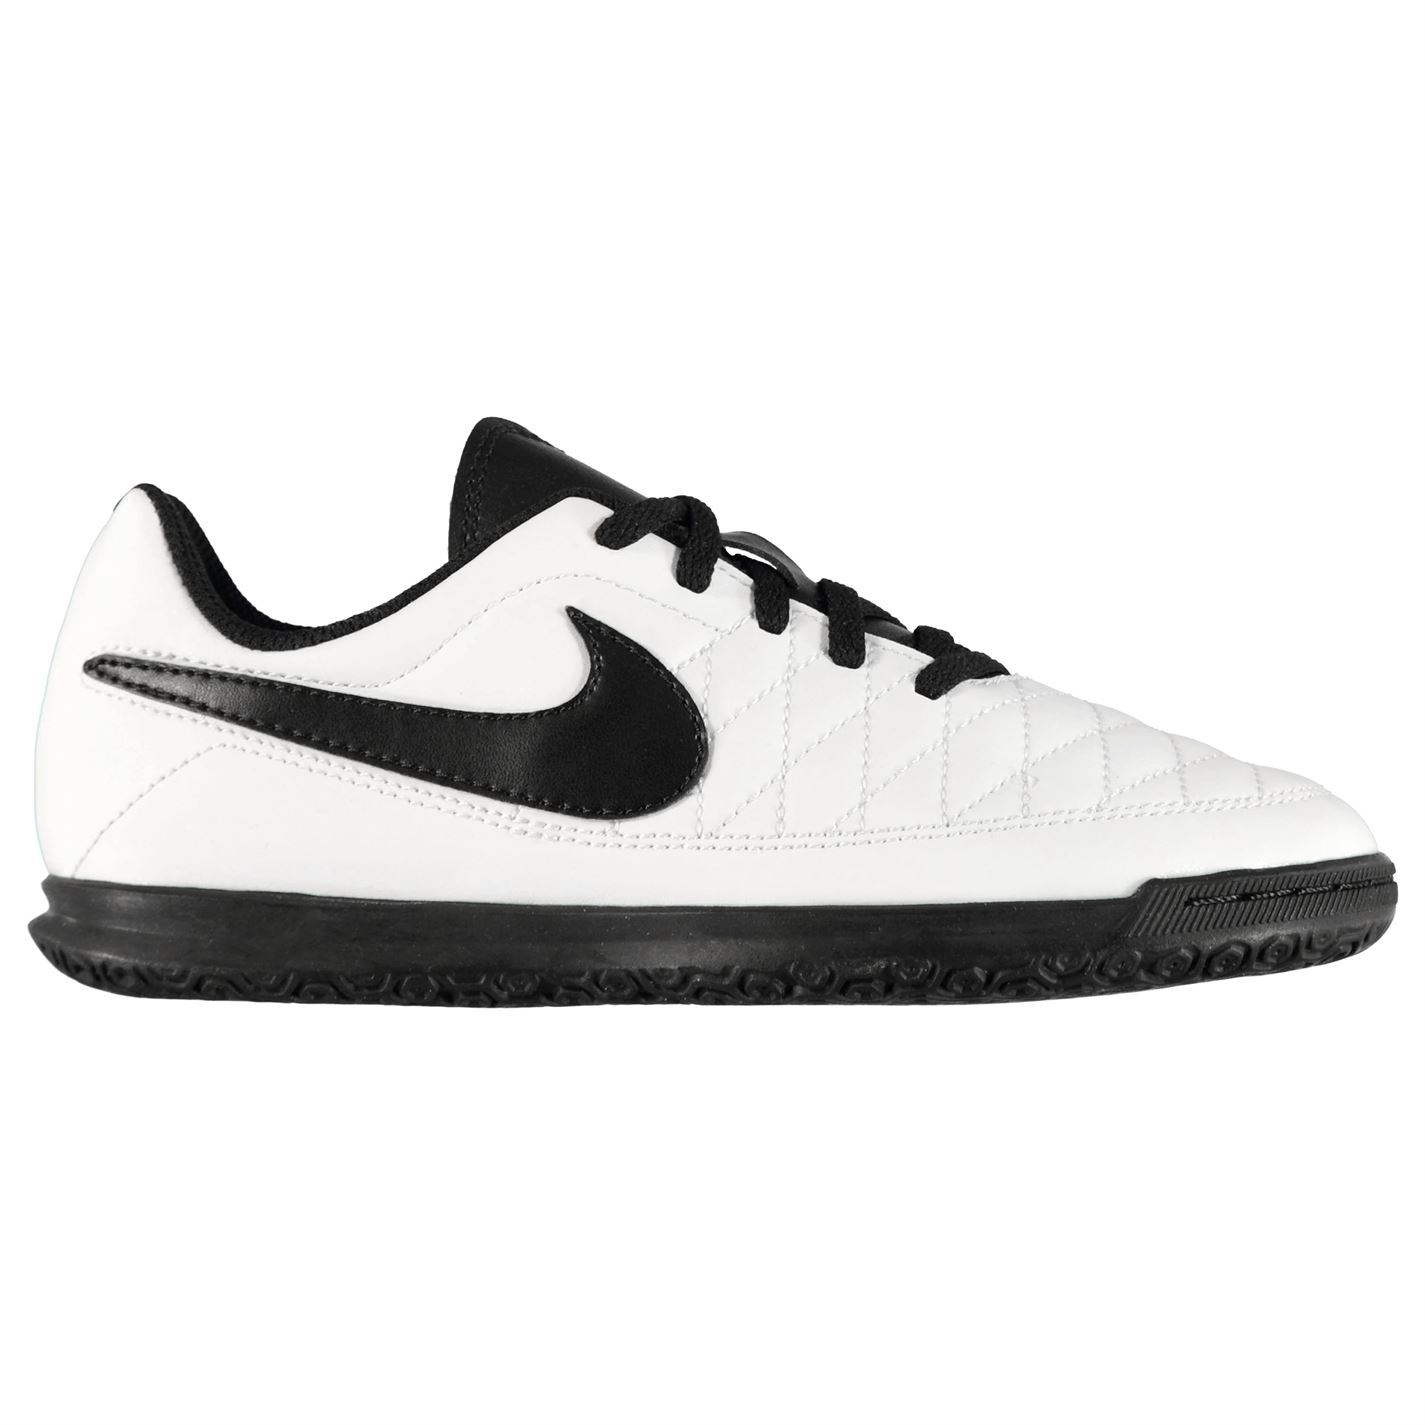 Nike-majestry-Indoor-Court-Football-formateurs-juniors-Football-Baskets-Chaussures miniature 12